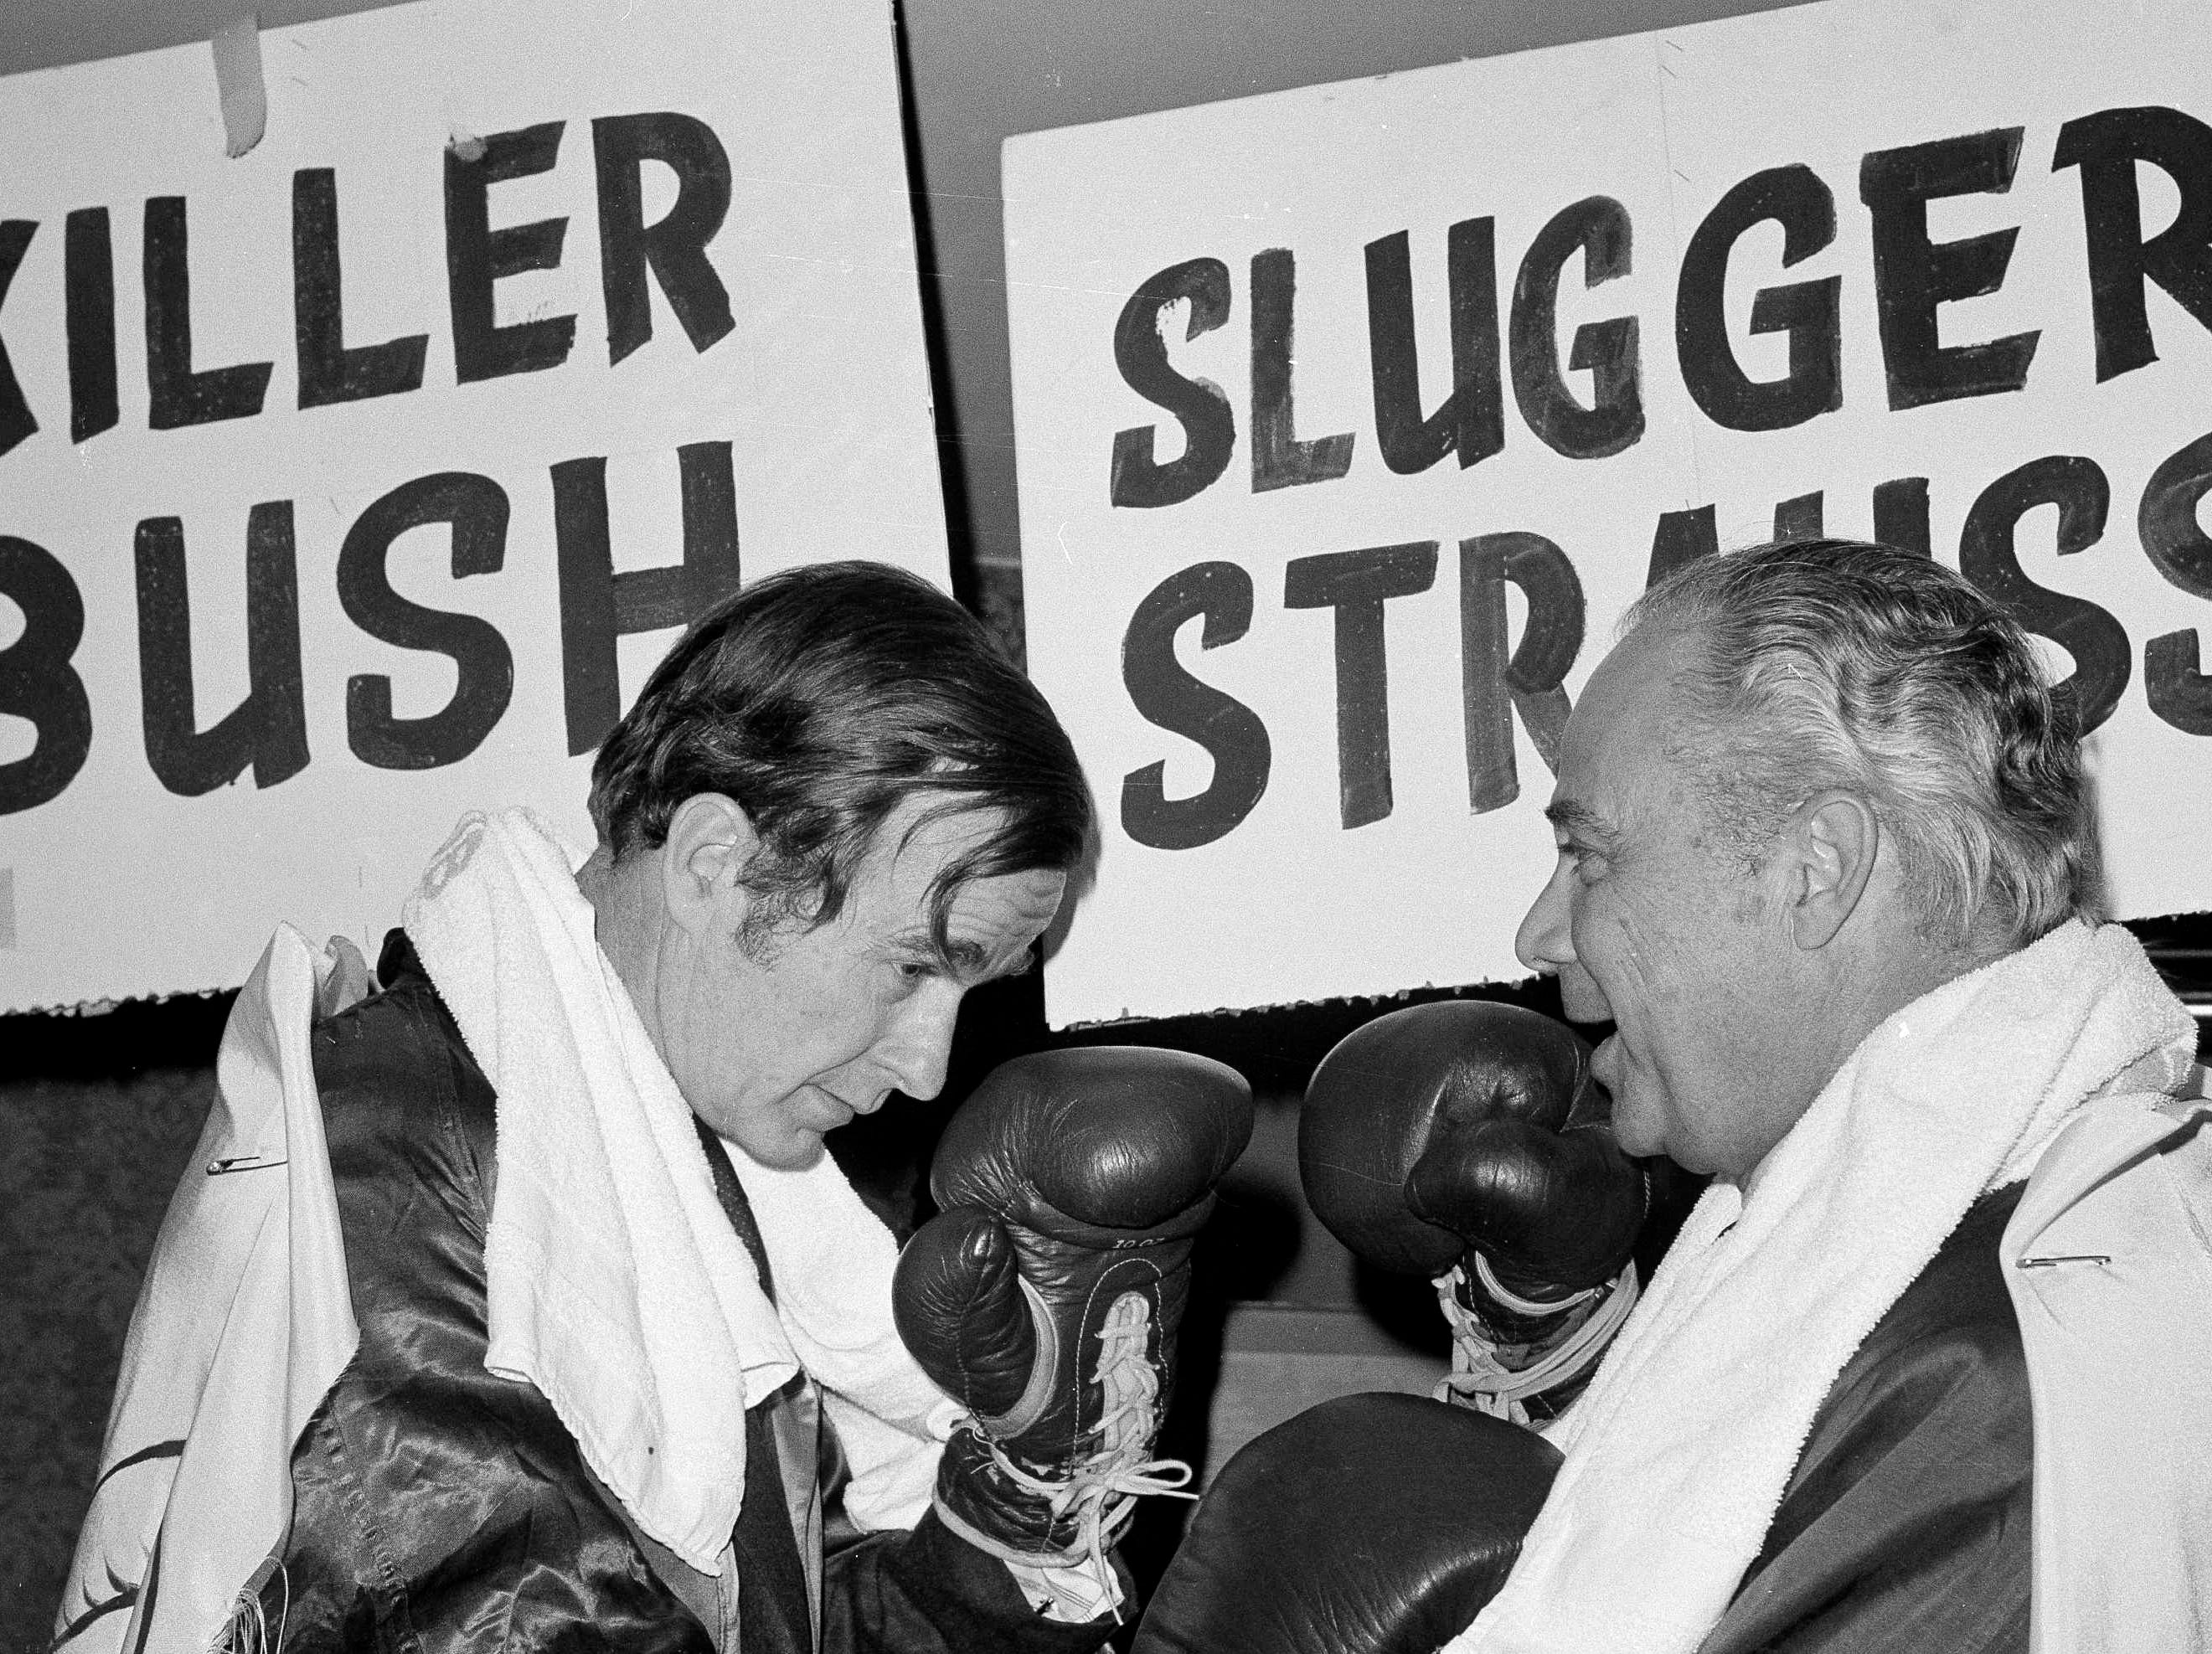 "Republican National Committee chairman George Bush, left, sizes up his opponent, Democratic National Committee chairman Robert S. Strauss, during the Circus Saints and Sinners Club luncheon in Washington, March 7, 1974. ""Killer"" Bush and ""Slugger"" Strauss donned the gloves for what was billed as the ""Battle of the Century."" (AP Photo/Henry Burroughs)"